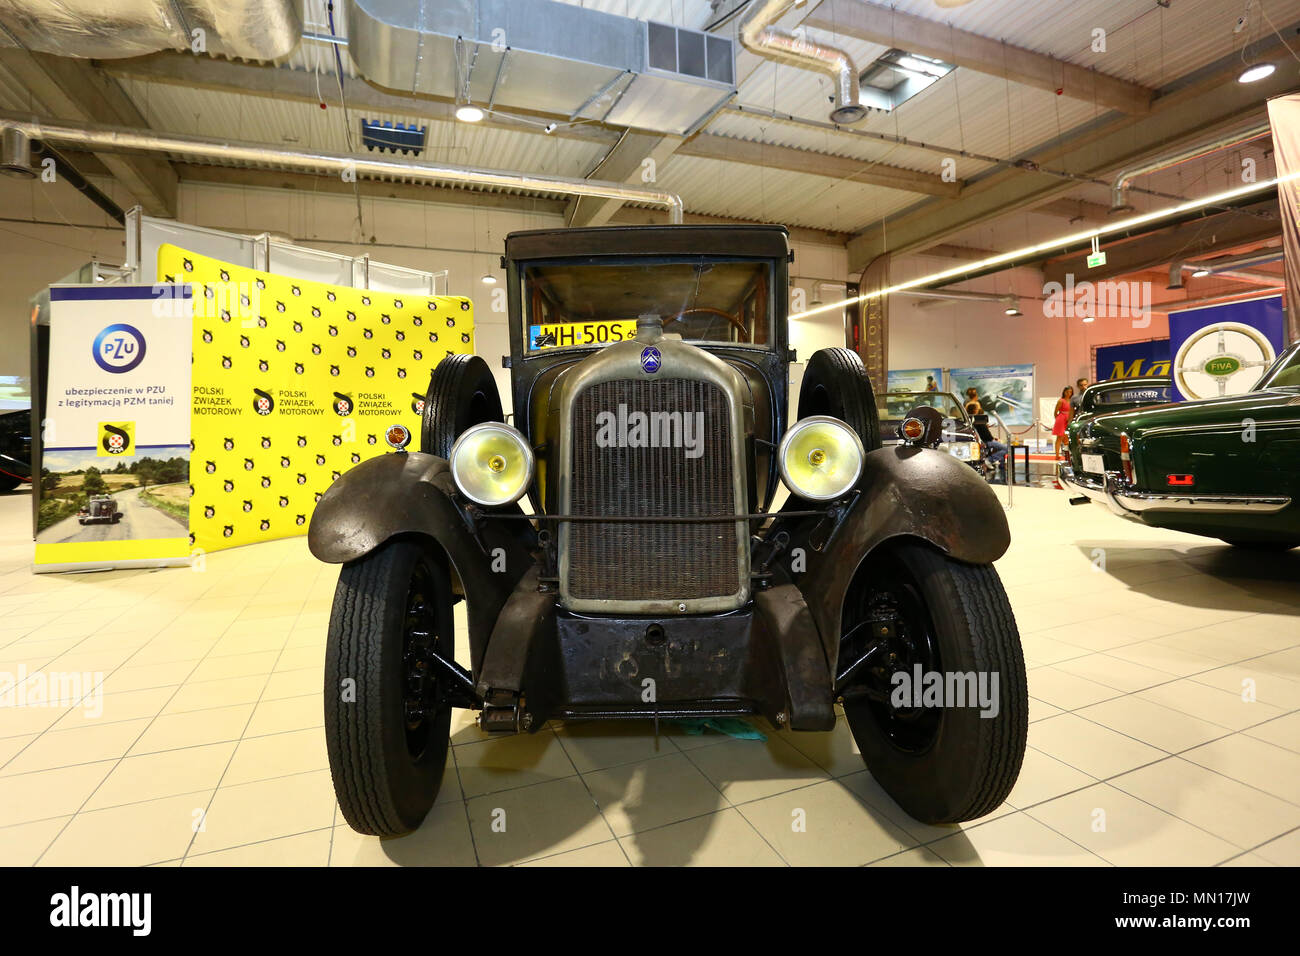 Poland, Nadarzyn, 13th May 2018: PTAK expo center second day of Oldtimer Show. ©Madeleine Ratz/Alamy Live News Stock Photo